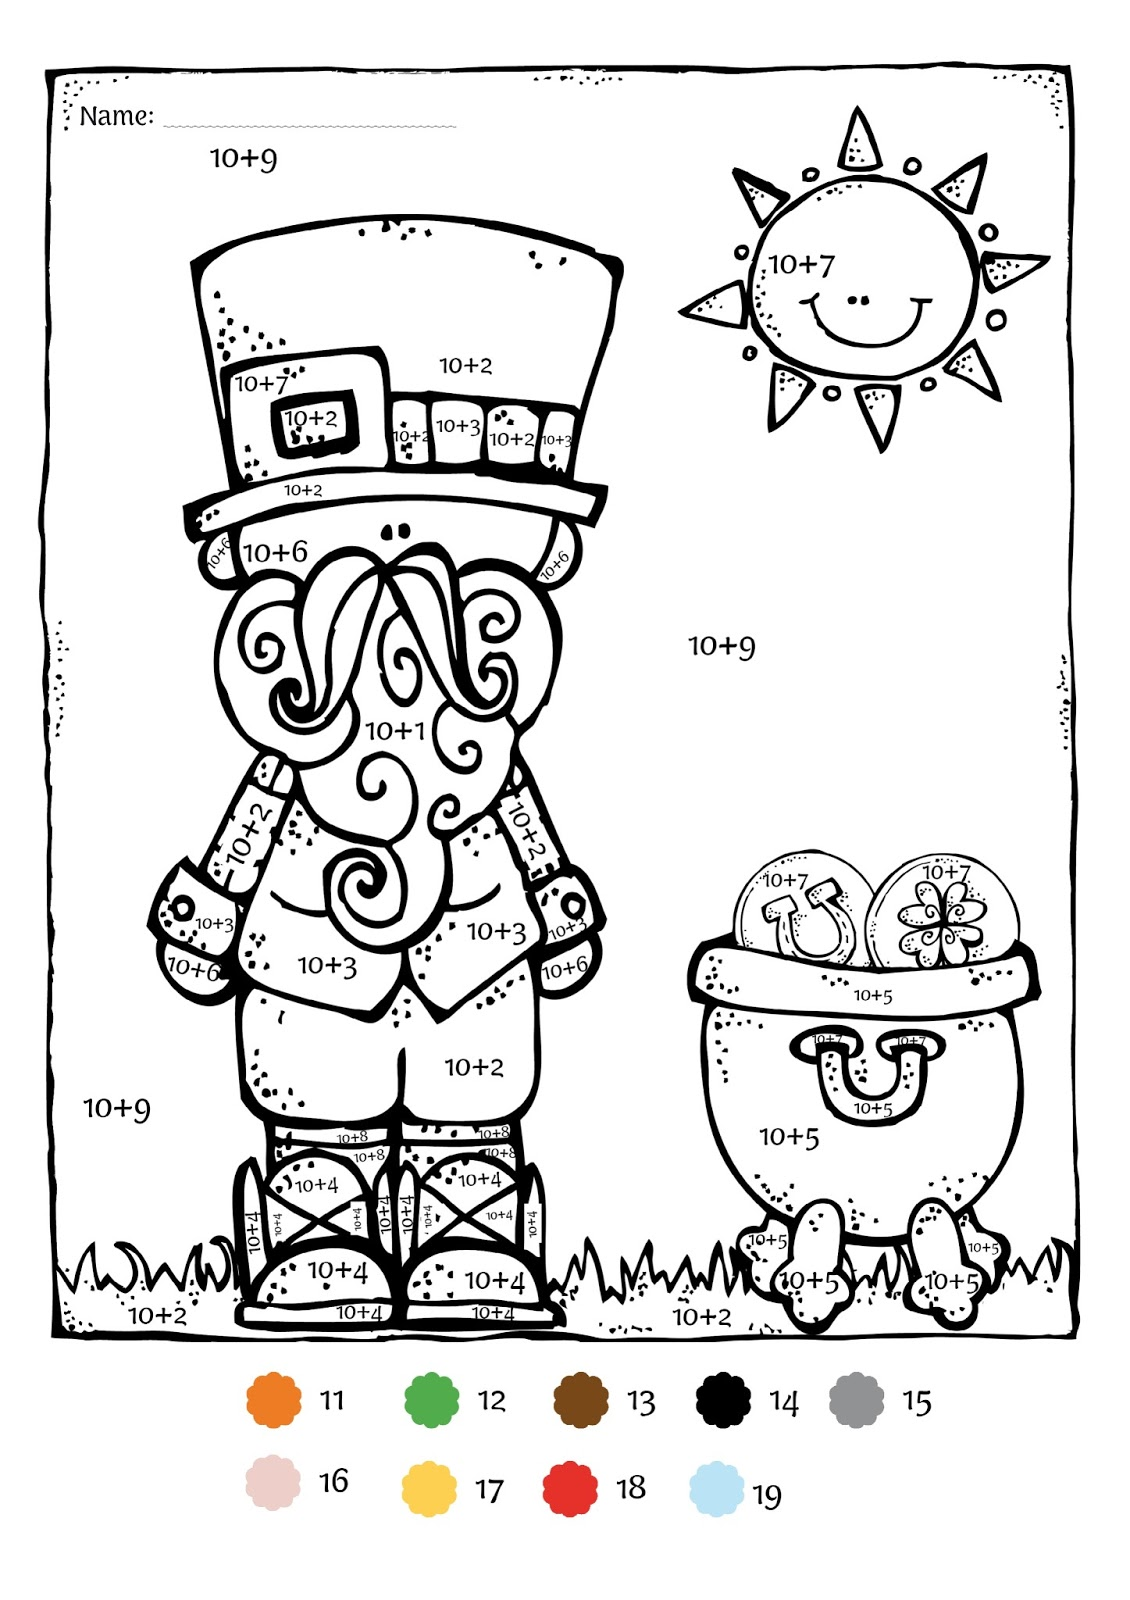 Math color worksheets for 1st grade - St Patrick S Day Math Freebie Kindergarten And 1st Grade